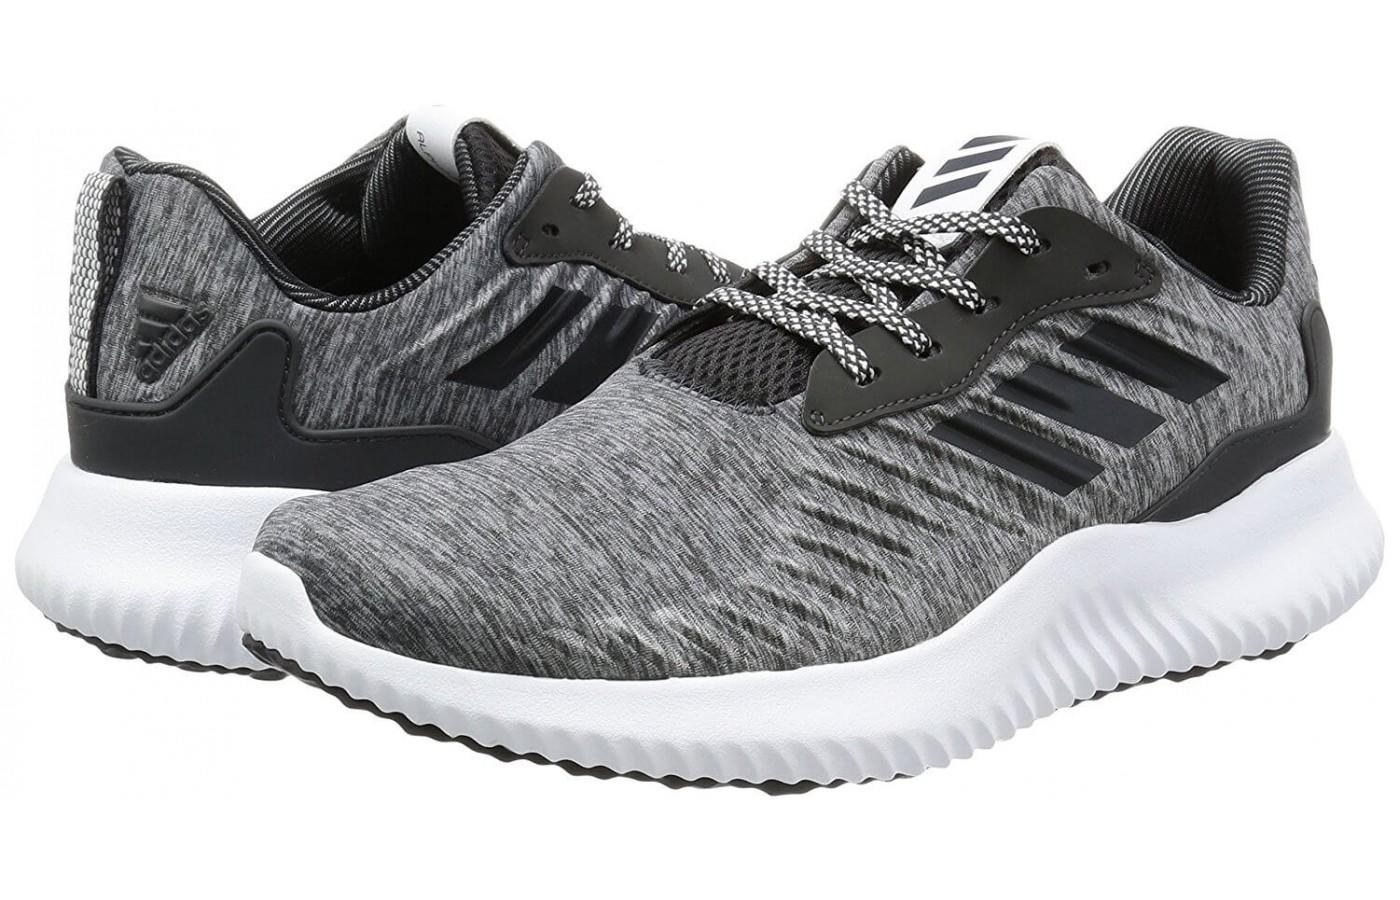 4e9c780bb676e Adidas Alphabounce RC Review - Buy or Not in May 2019